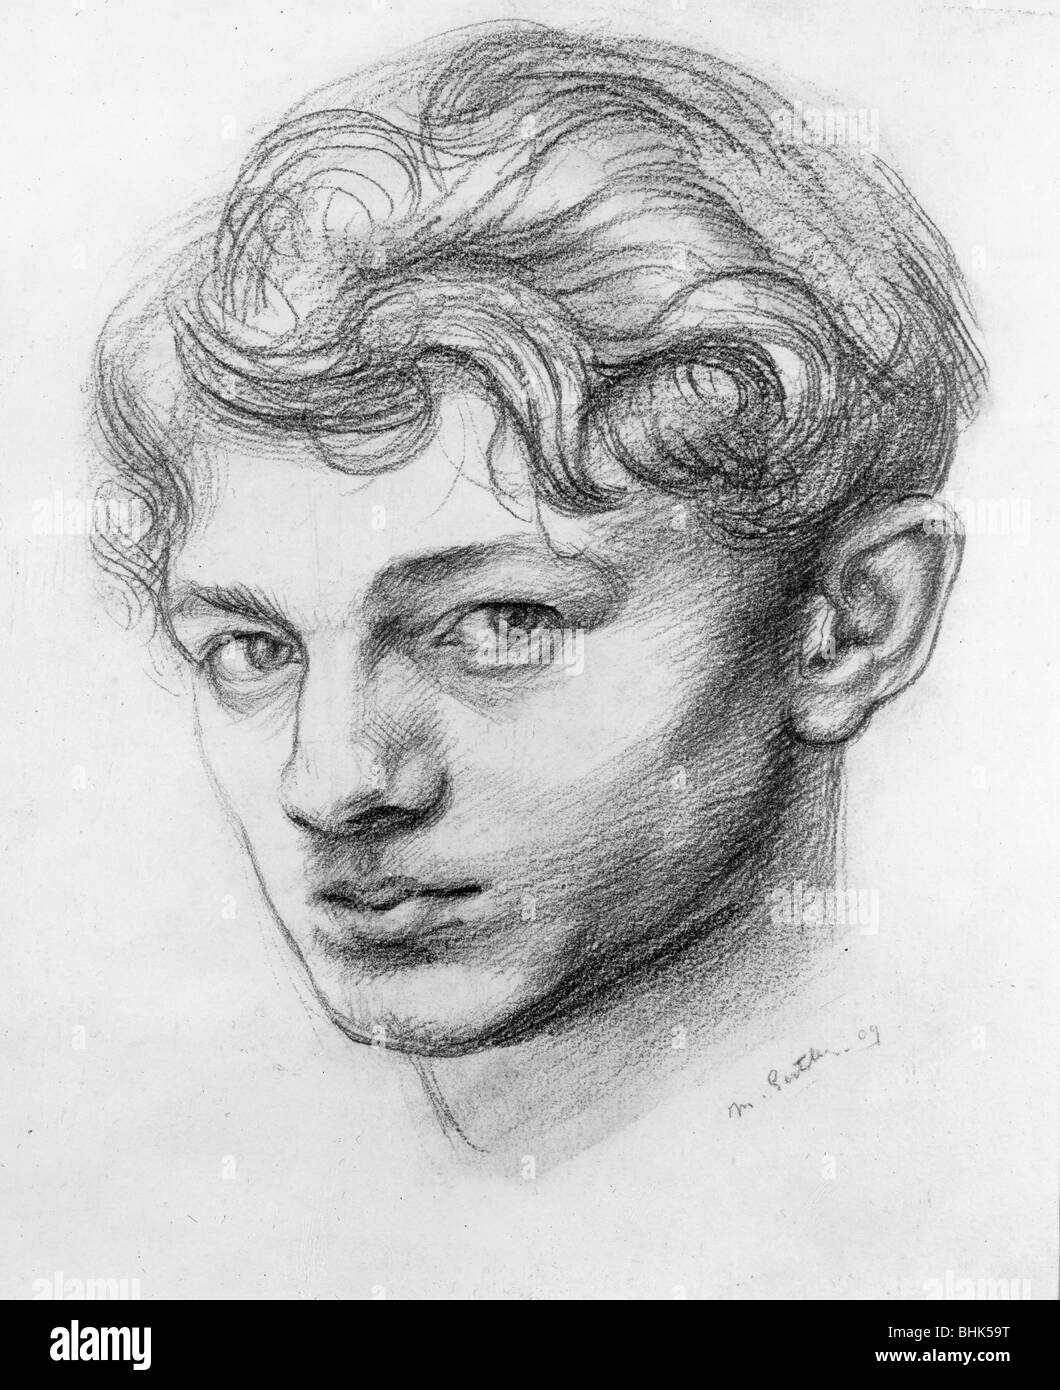 Mark Gertler (1891-1939), British artist - Self Portrait. Artist: Mark Gertler Stock Photo